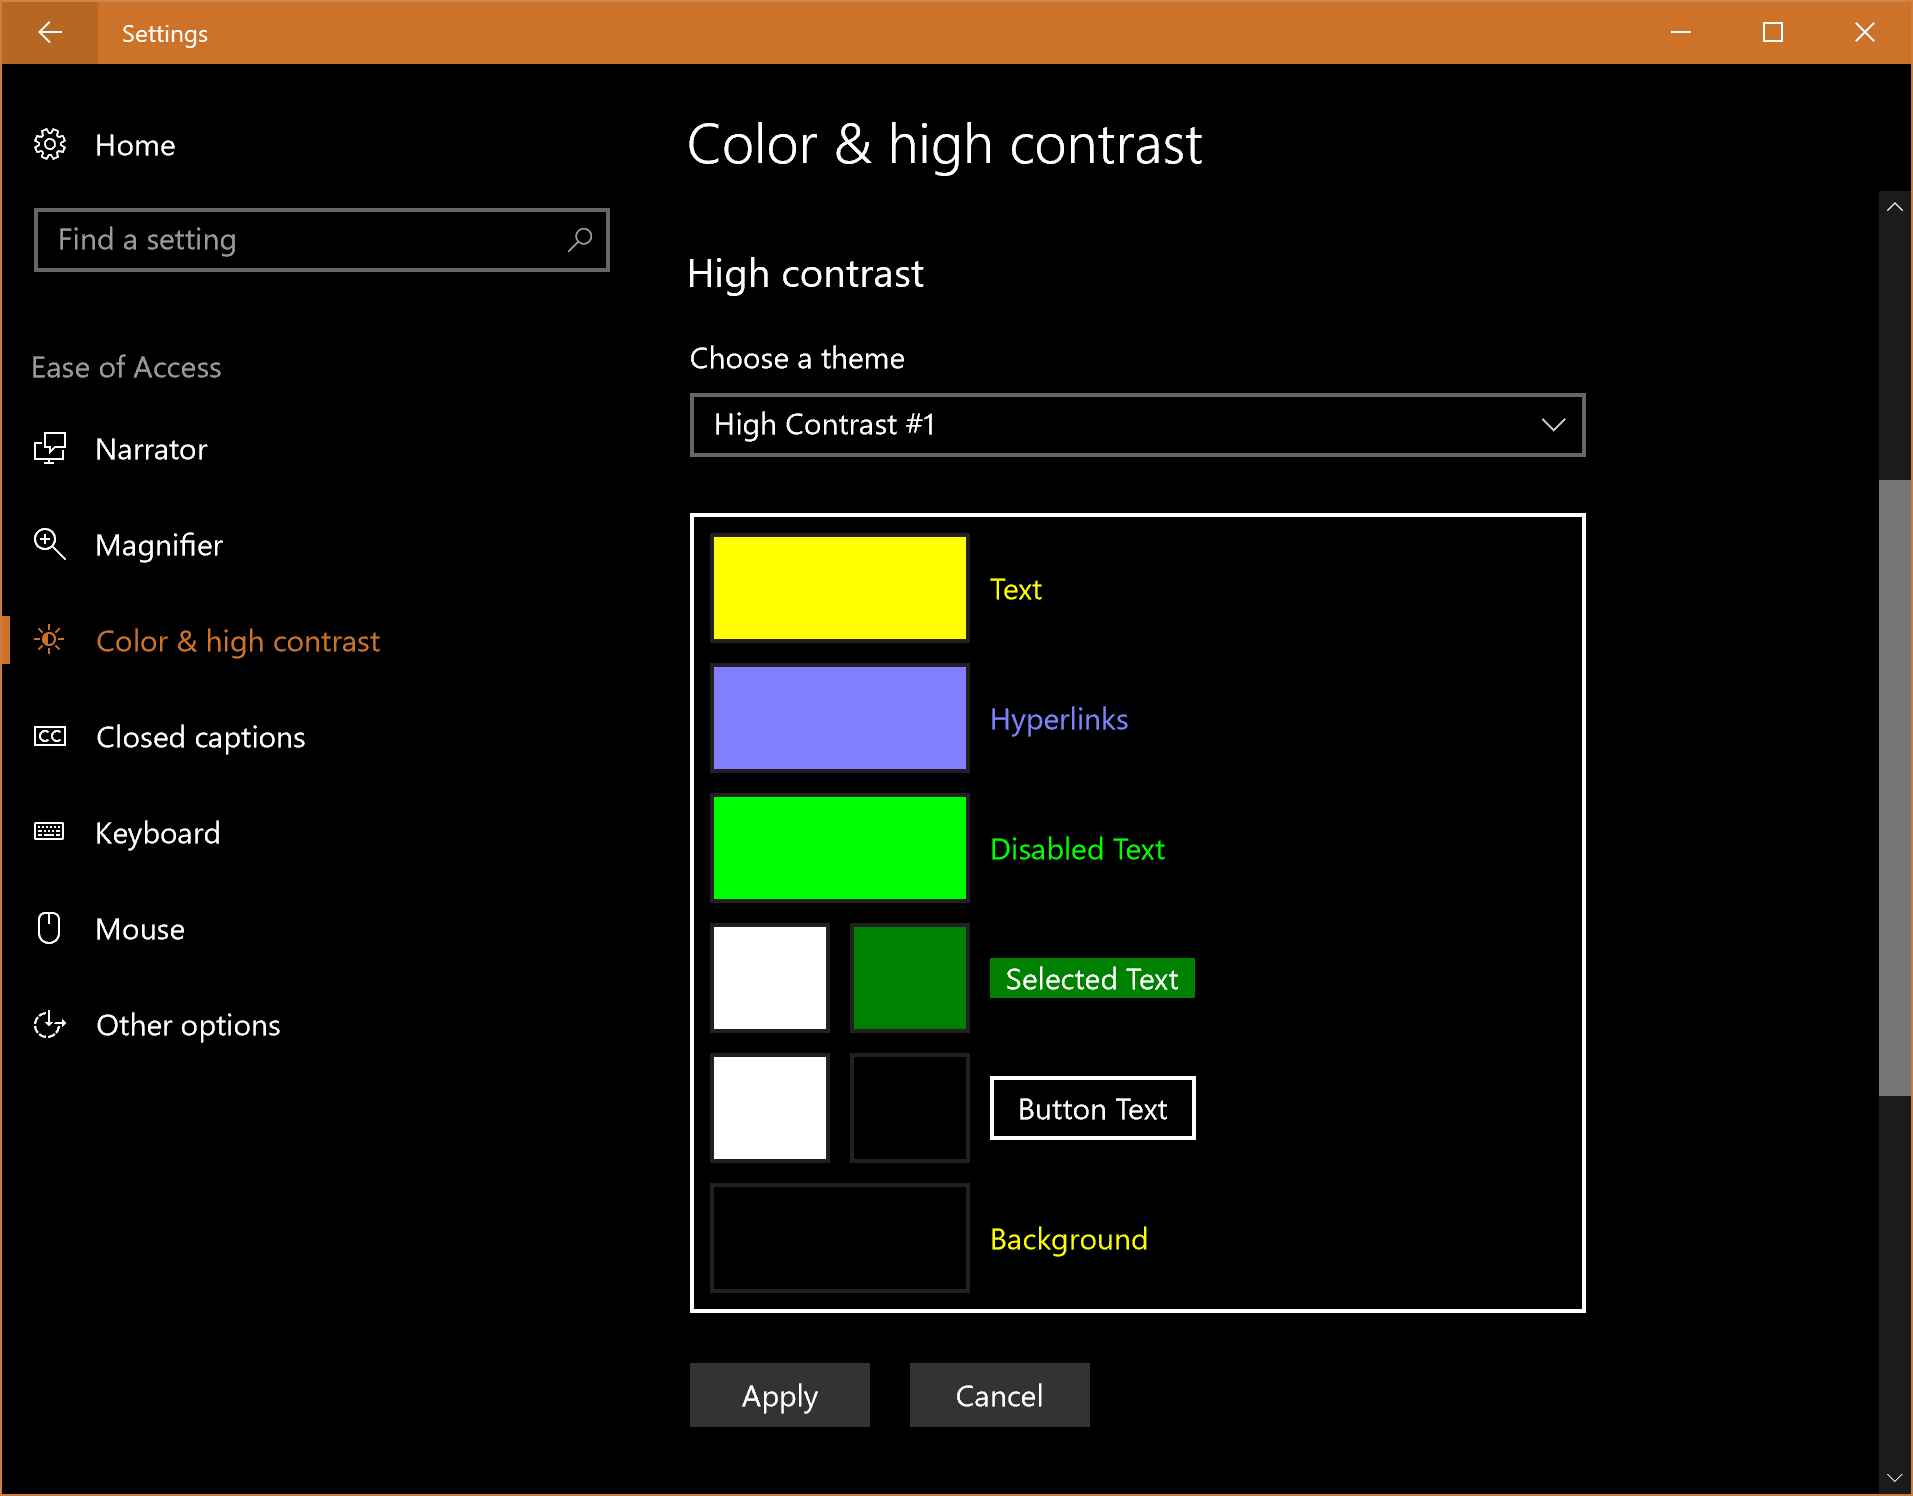 Windows 10 (Fall 2017 Creators Update) high contrast mode settings dialog.